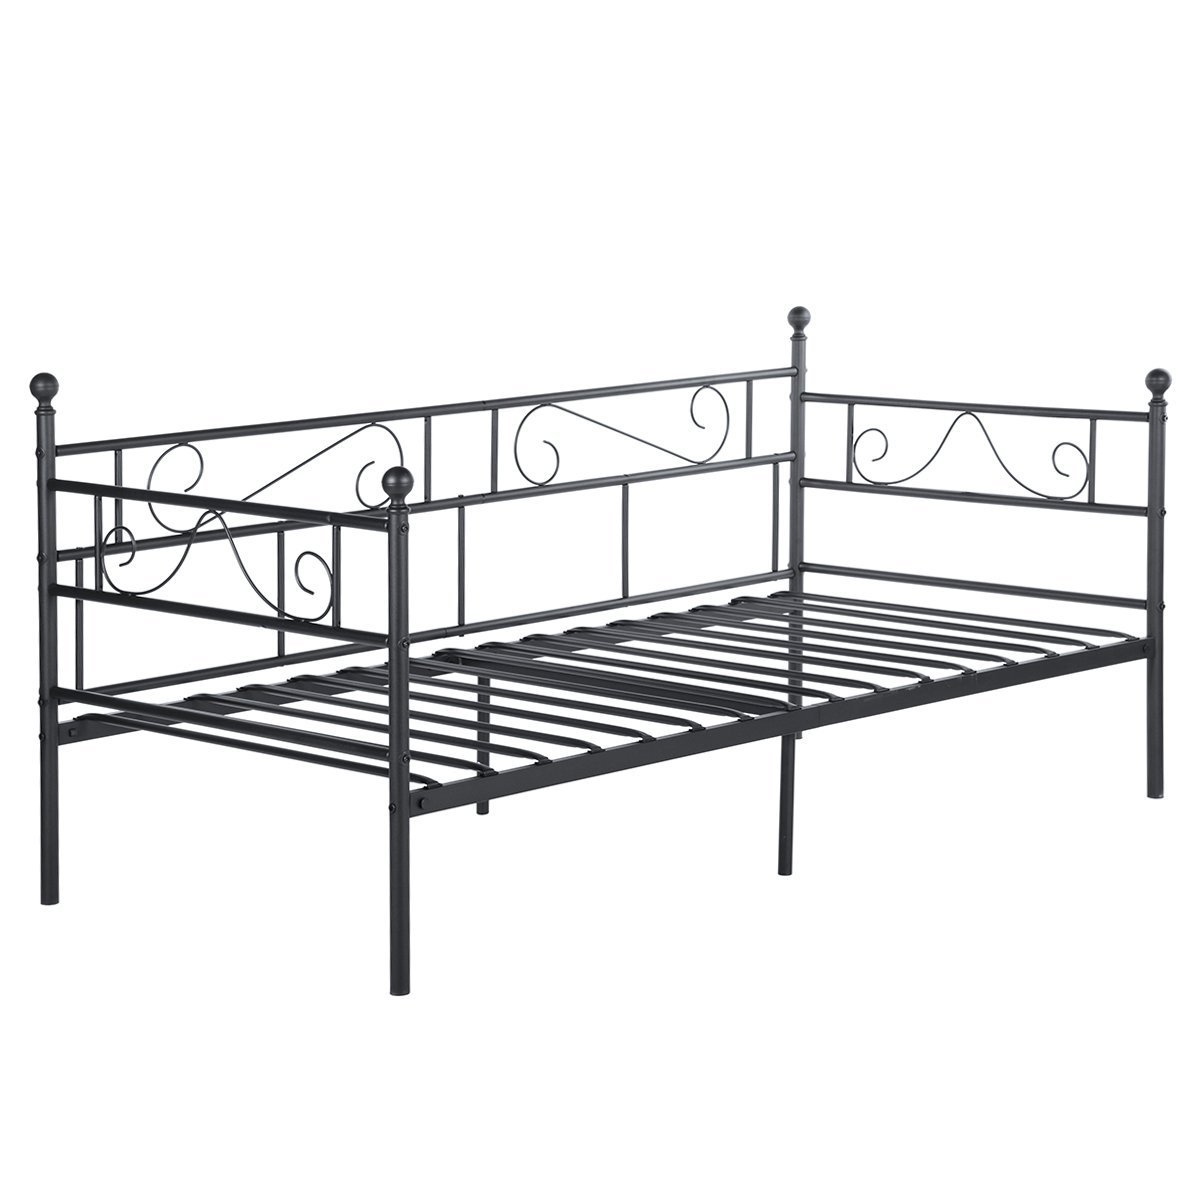 DORAFAIR Twin Daybed and Trundle Frame Set with Pull Out Trundle for Living Room Guest Room,Guest Bed Frame Sofa Bed with Headboard Platform Base,Black